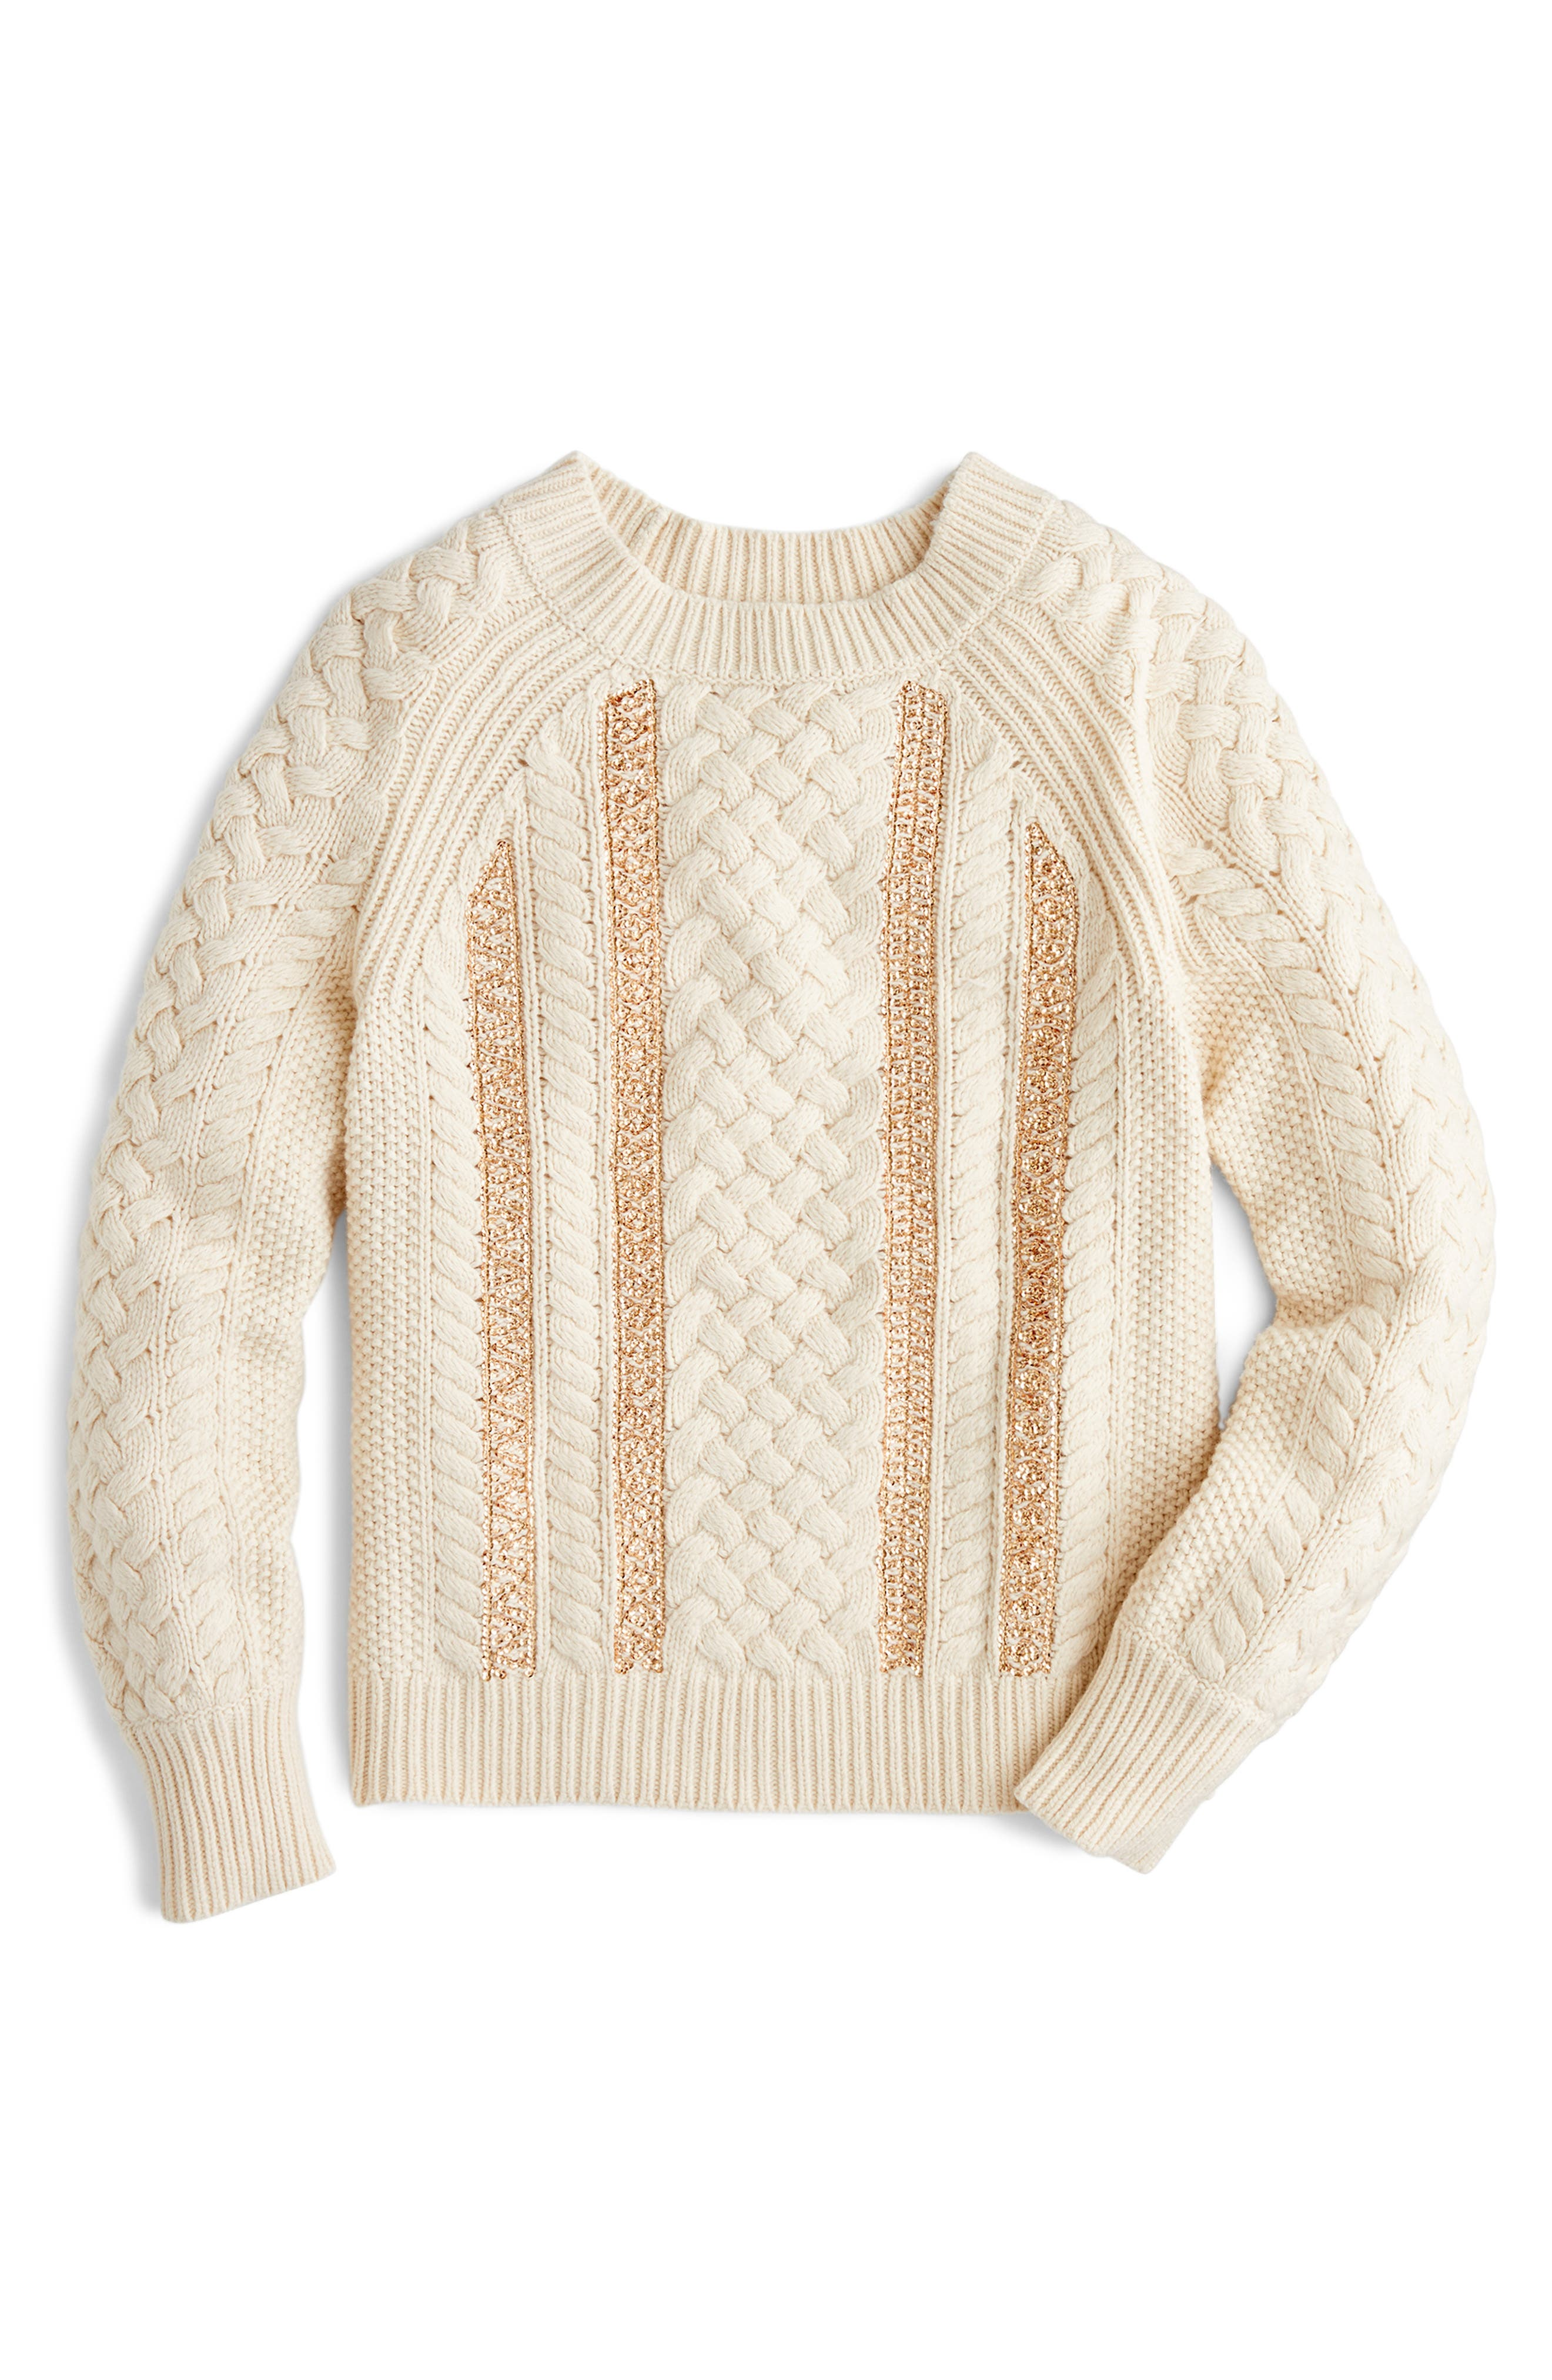 Cable Knit Sequin Sweater,                             Main thumbnail 1, color,                             900